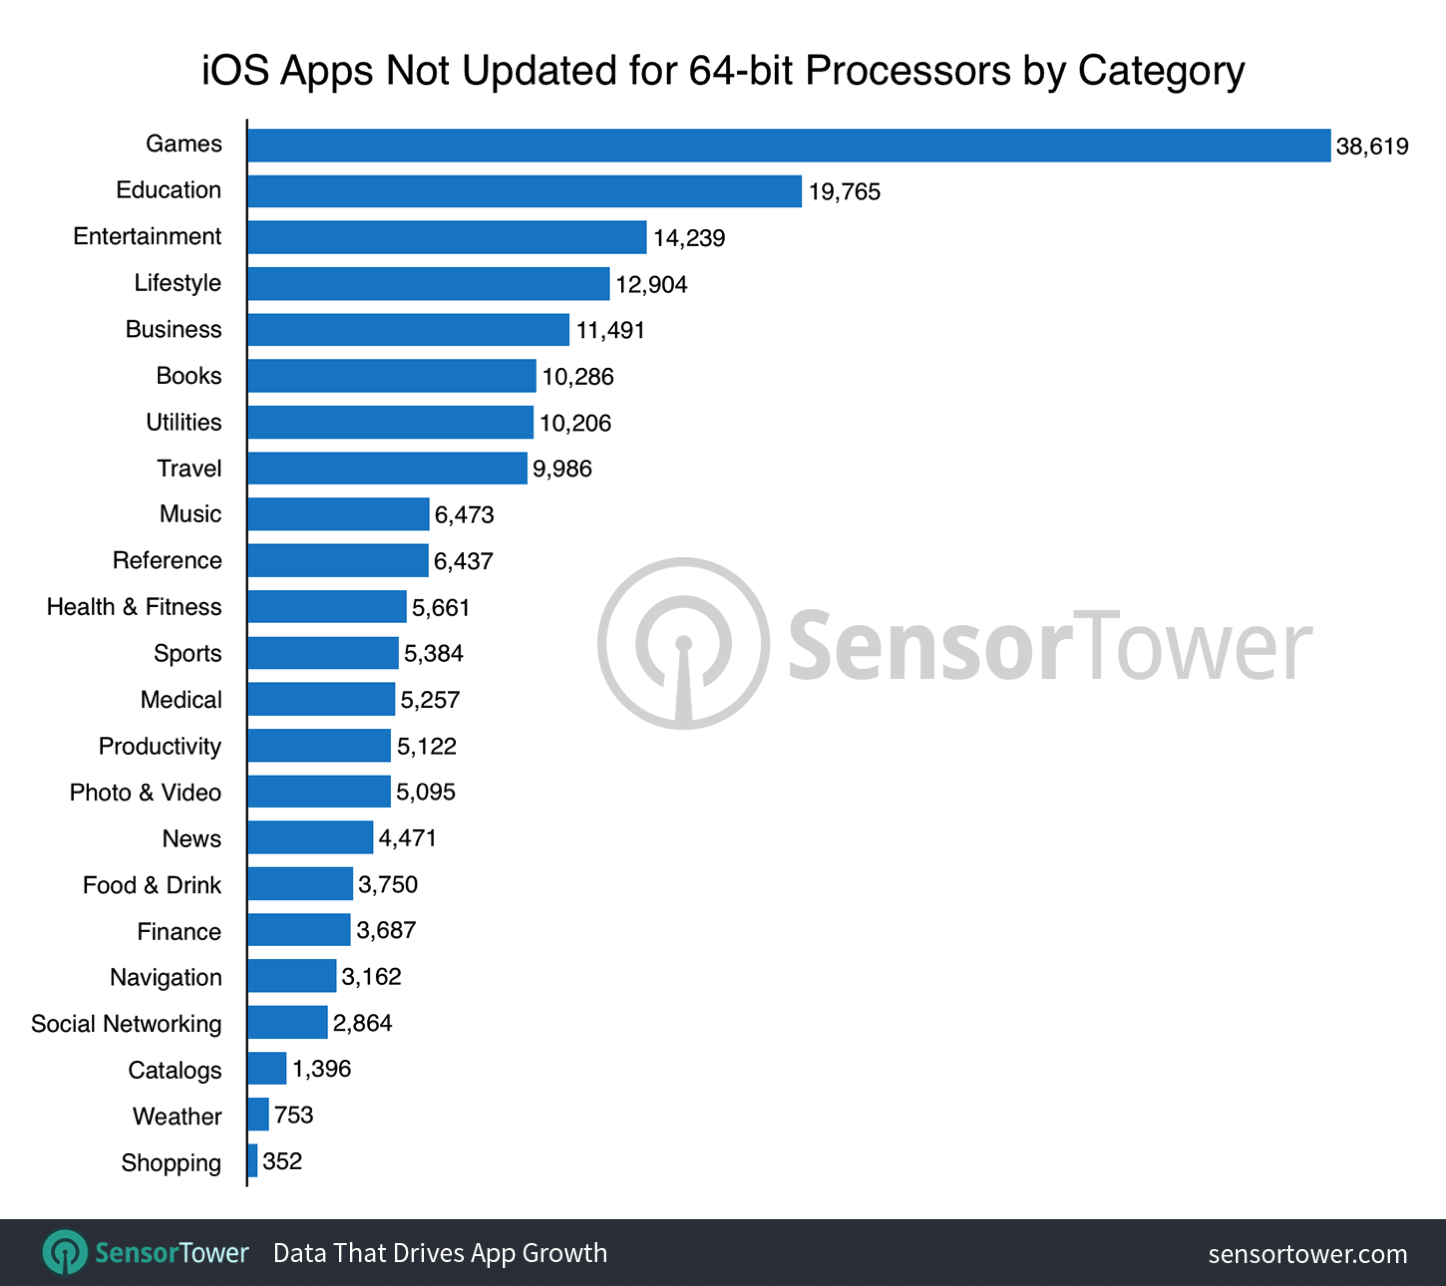 32 bit ios apps by category